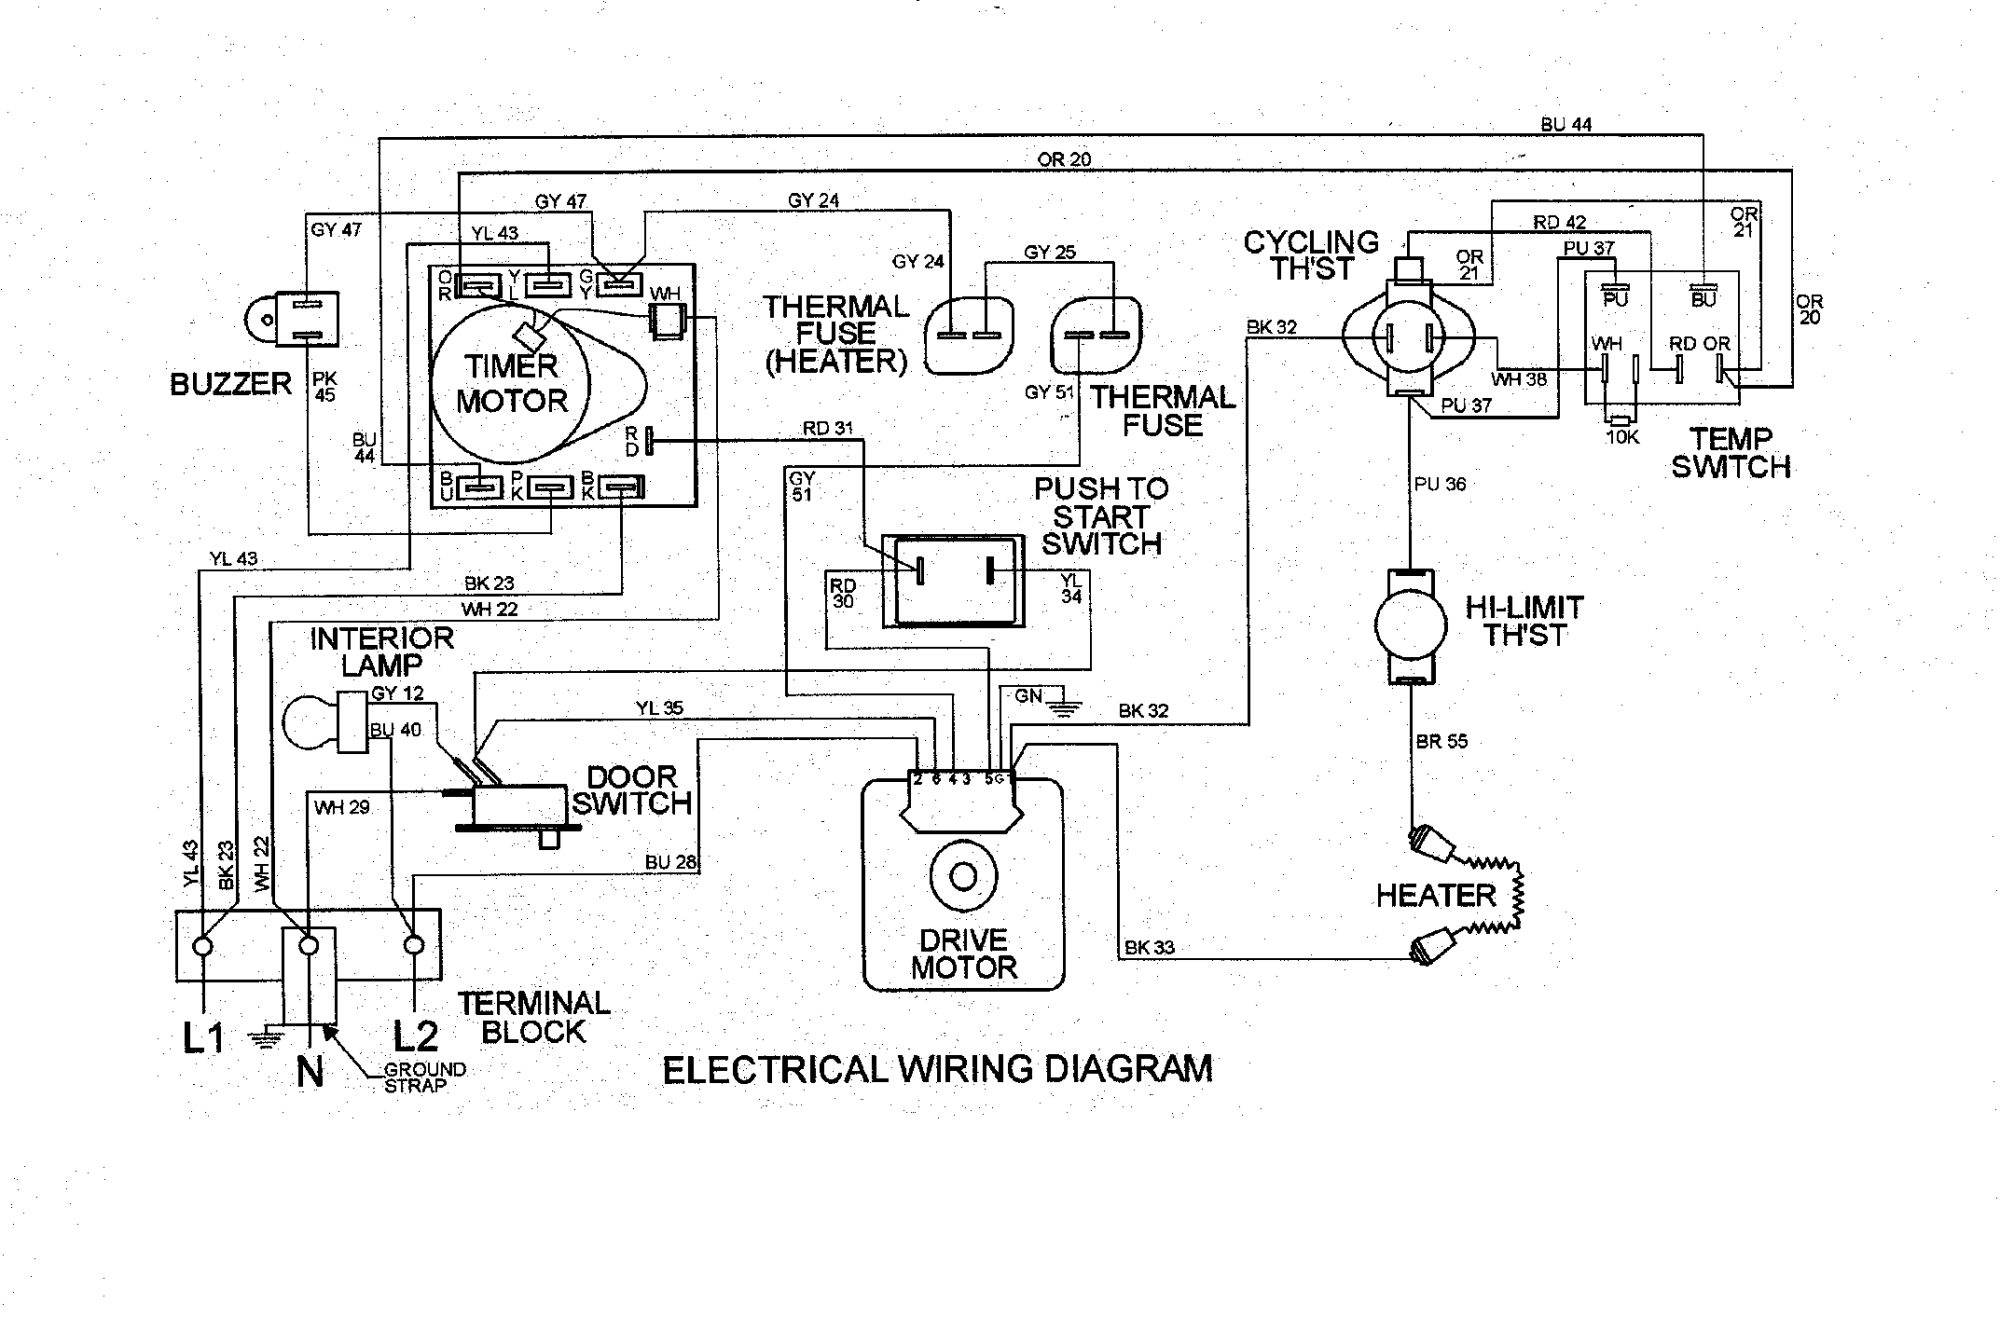 hight resolution of maytag dryer electrical schematic use wiring diagrammaytag dryer electrical diagram wiring diagram name maytag gas dryer